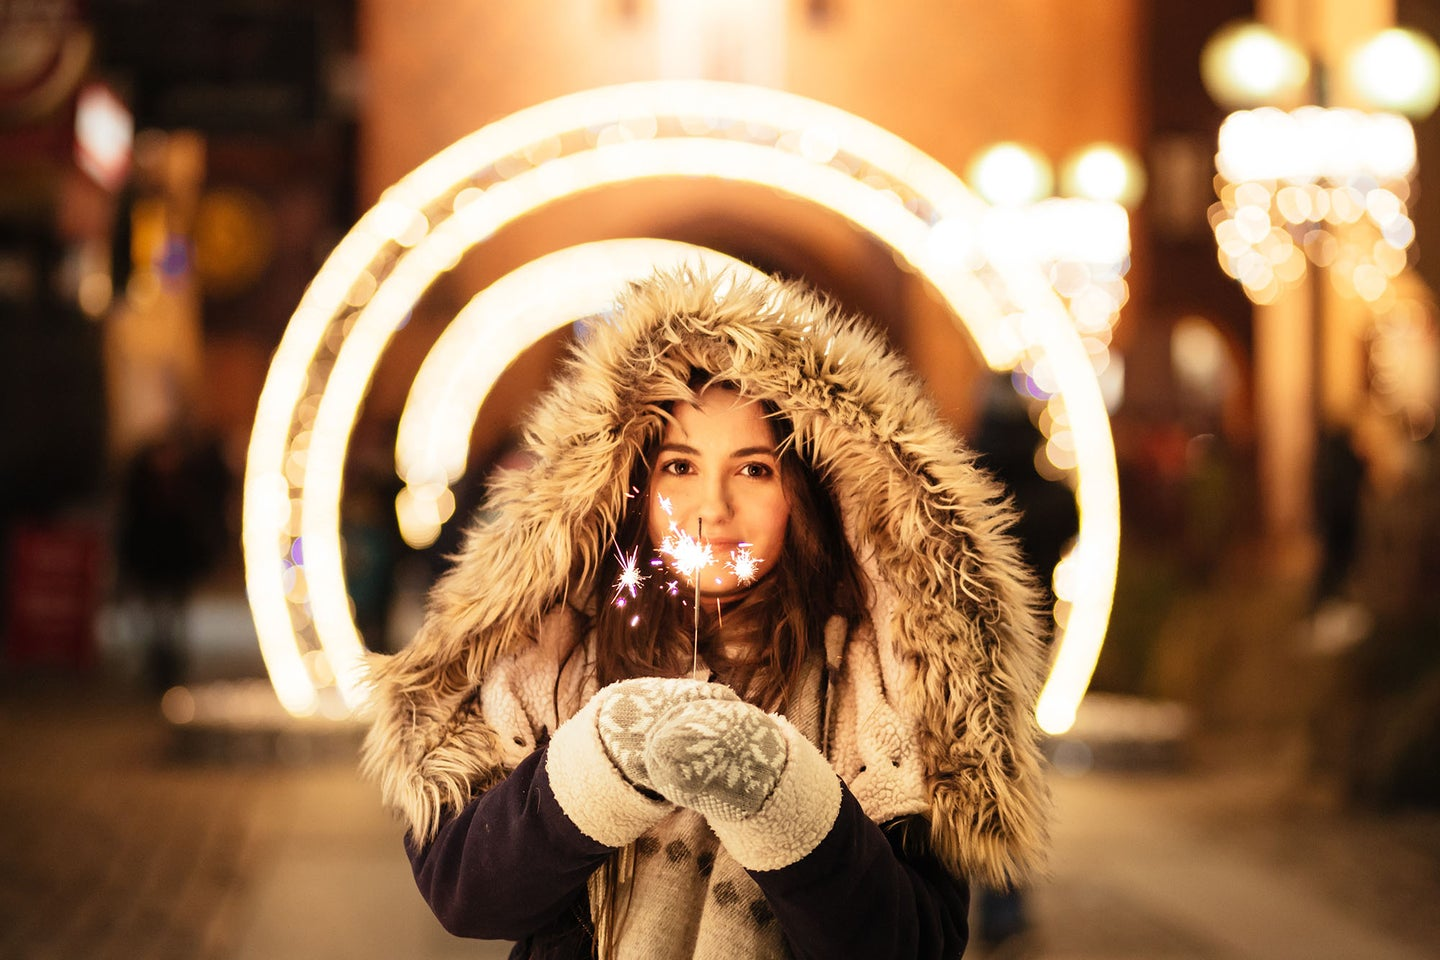 woman in a winter coat wearing the best mittens and holding sparklers